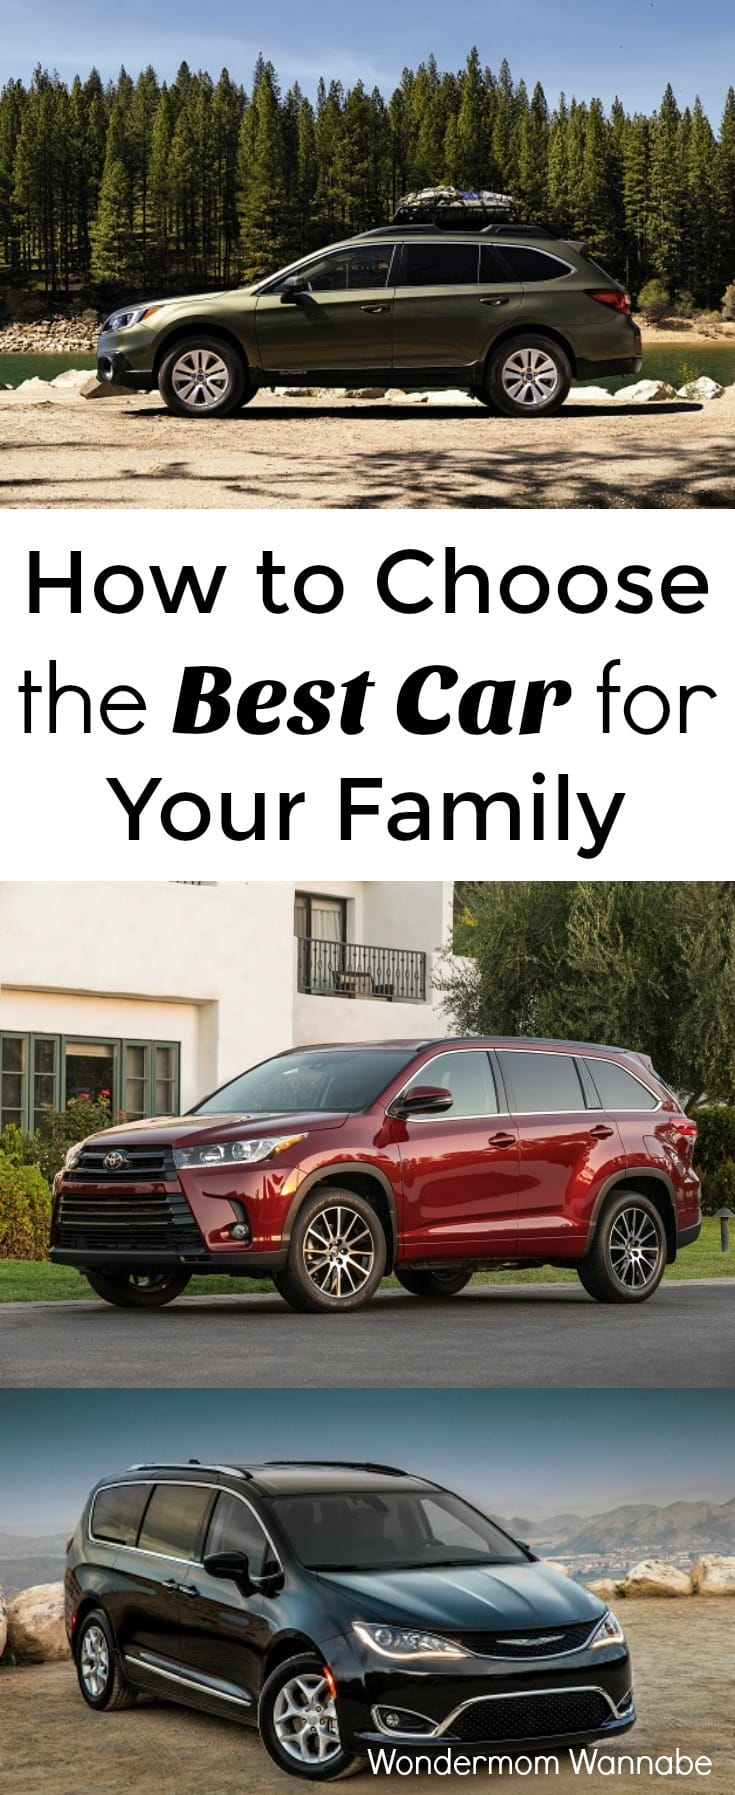 I'm so glad I don't have to do research on thousands of cars to find our new family car. Kelley Blue Book's list of the 12 Best Family Cars narrows the list to just 12. I love that they used the same criteria that's most important to me as a mom.